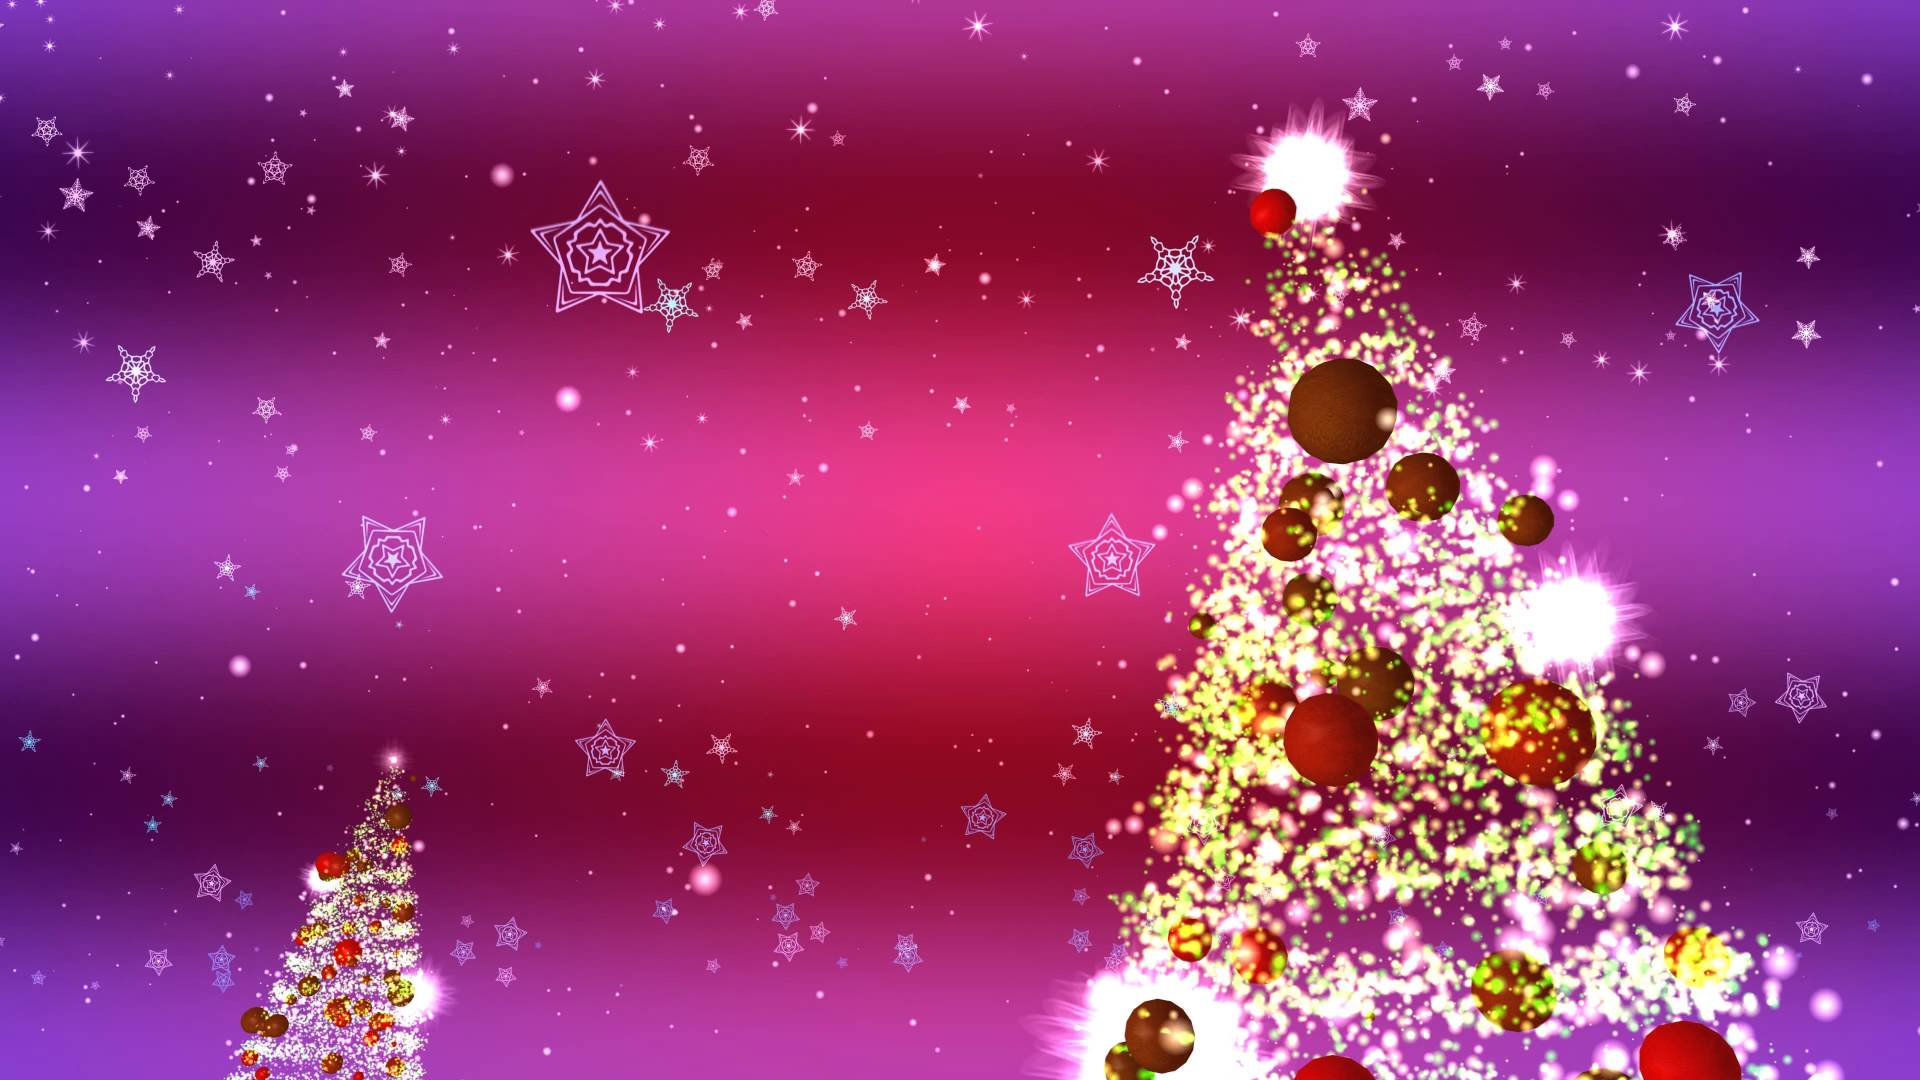 4K CHRISTMAS TREE and SNOWFLAKES ANIMATION BACKGROUND AA VFX 1920x1080